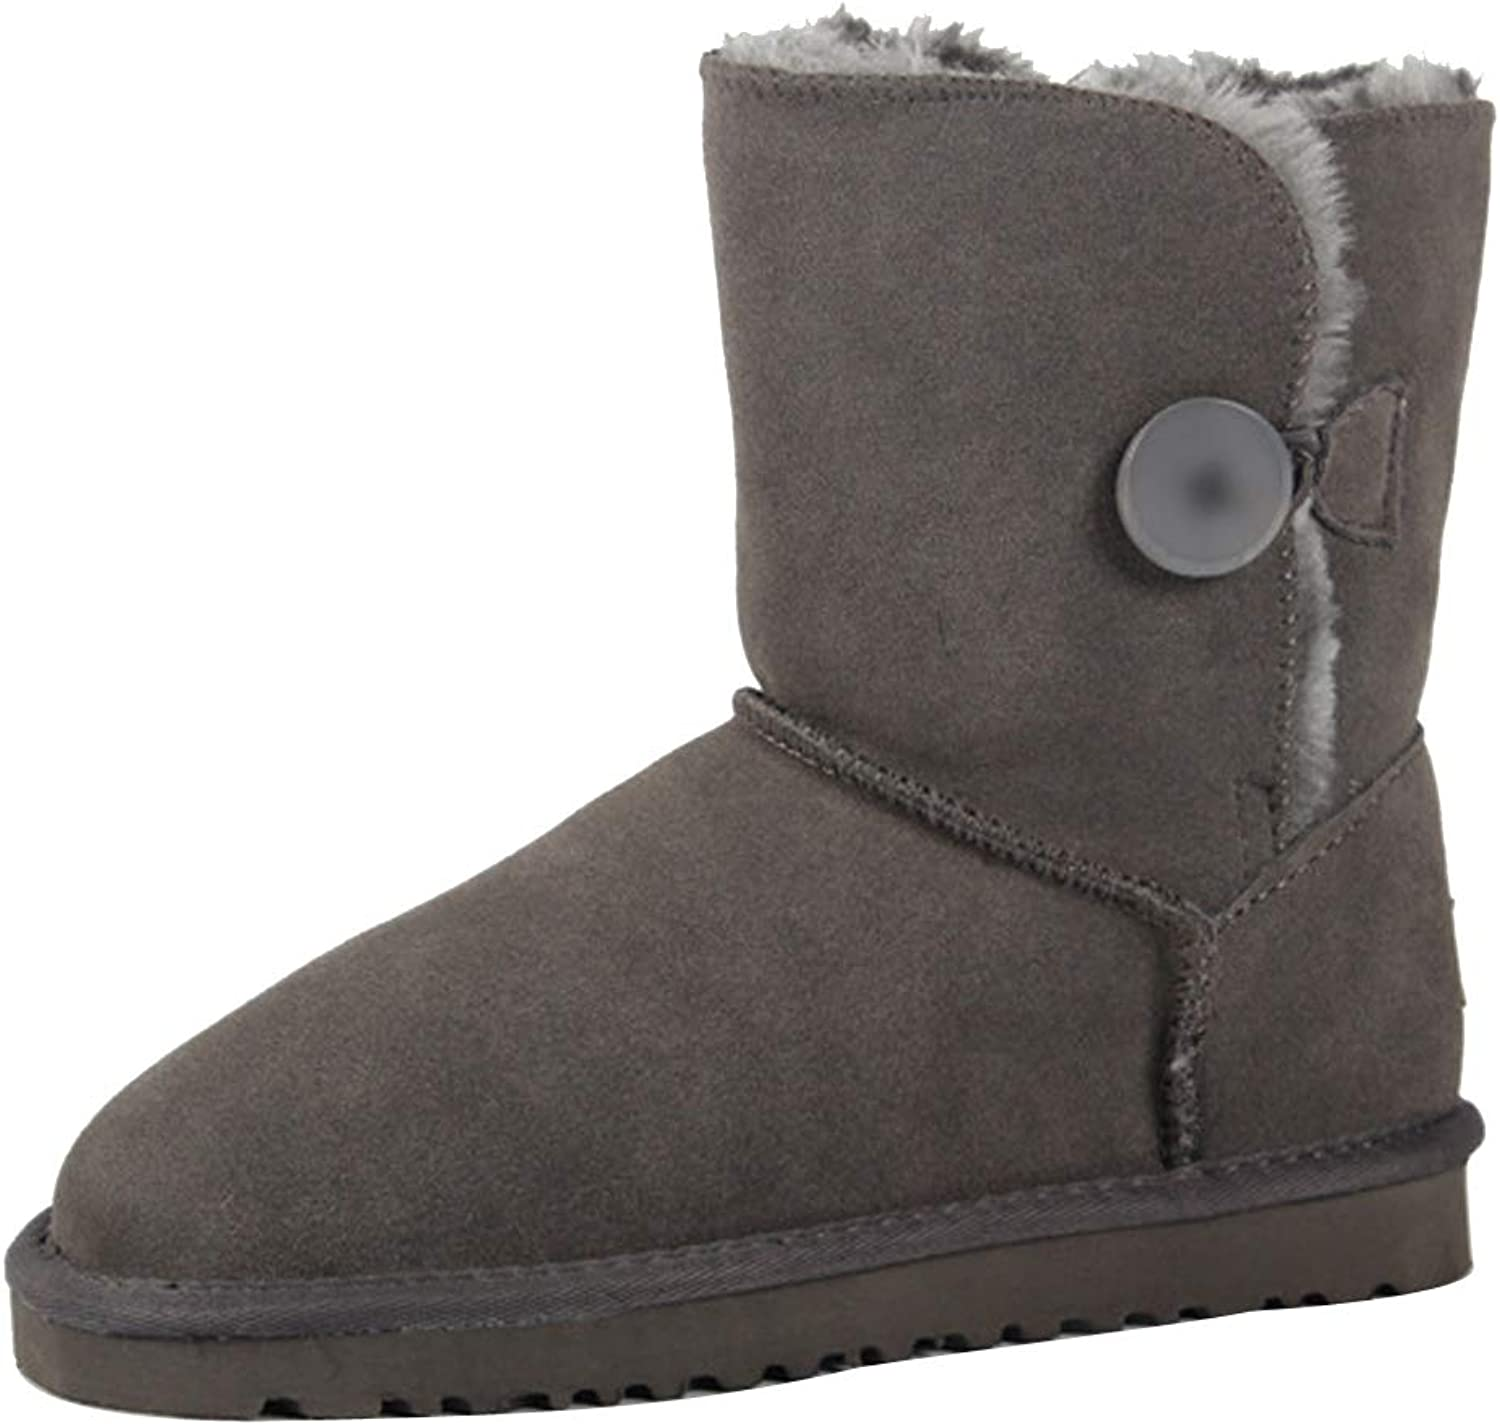 Themost Snow Boots Women's Suede Leather Sheepskin Fur Lining Winter Boot Walk Ankle Booties Grey